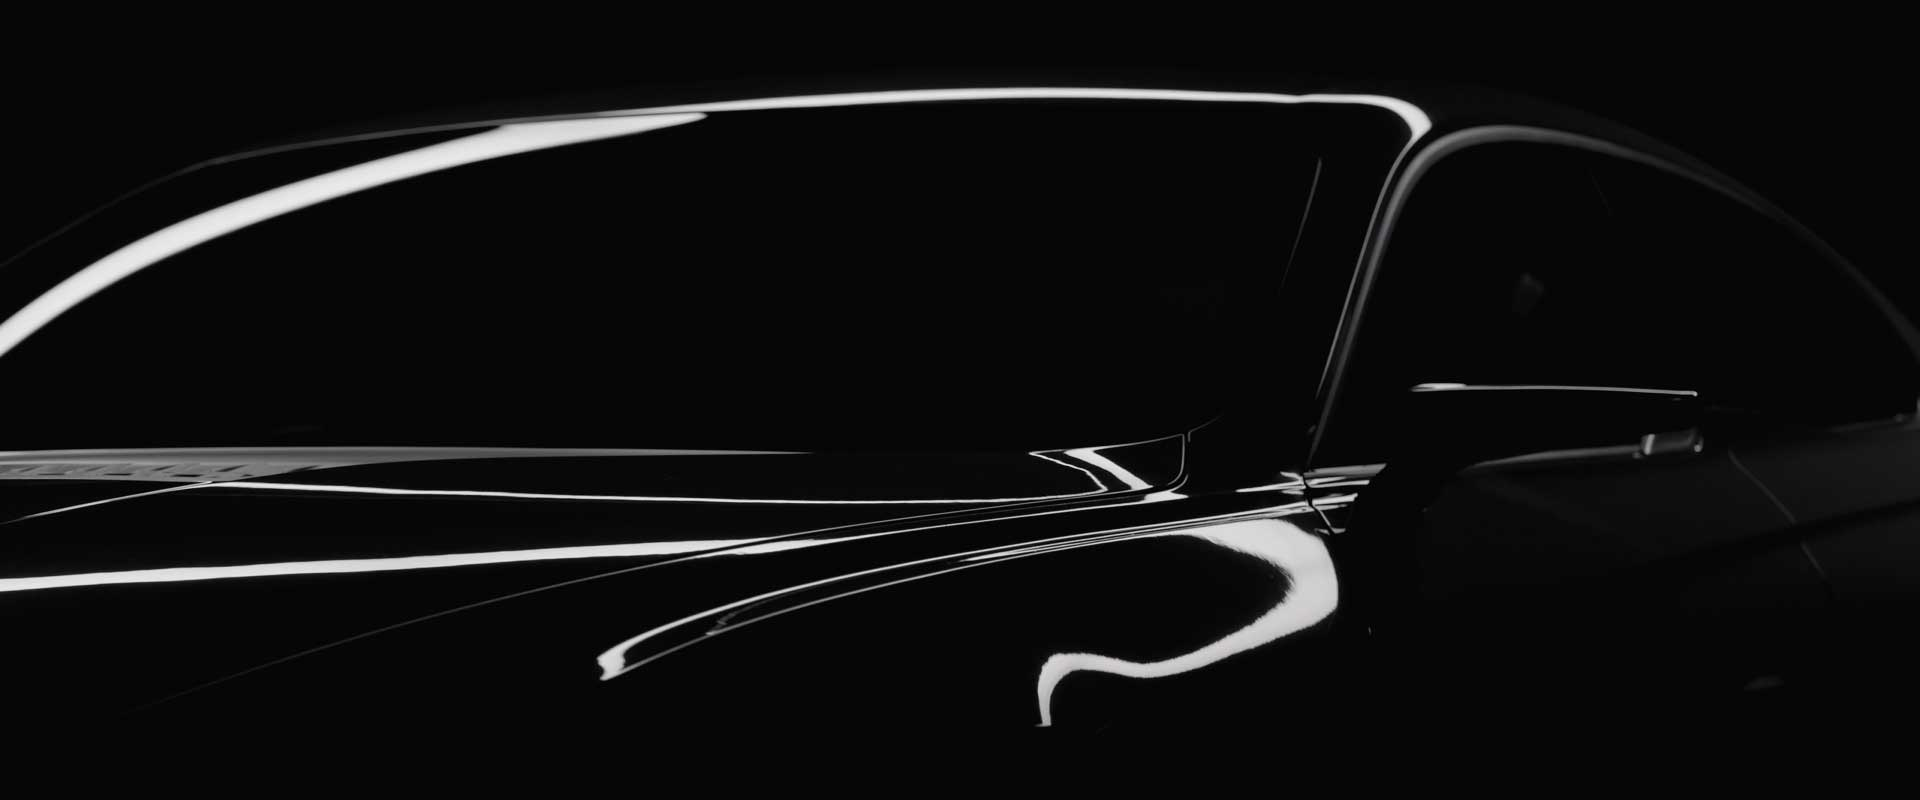 Design detail carfront. Still from Hyundai Genesis commercial.